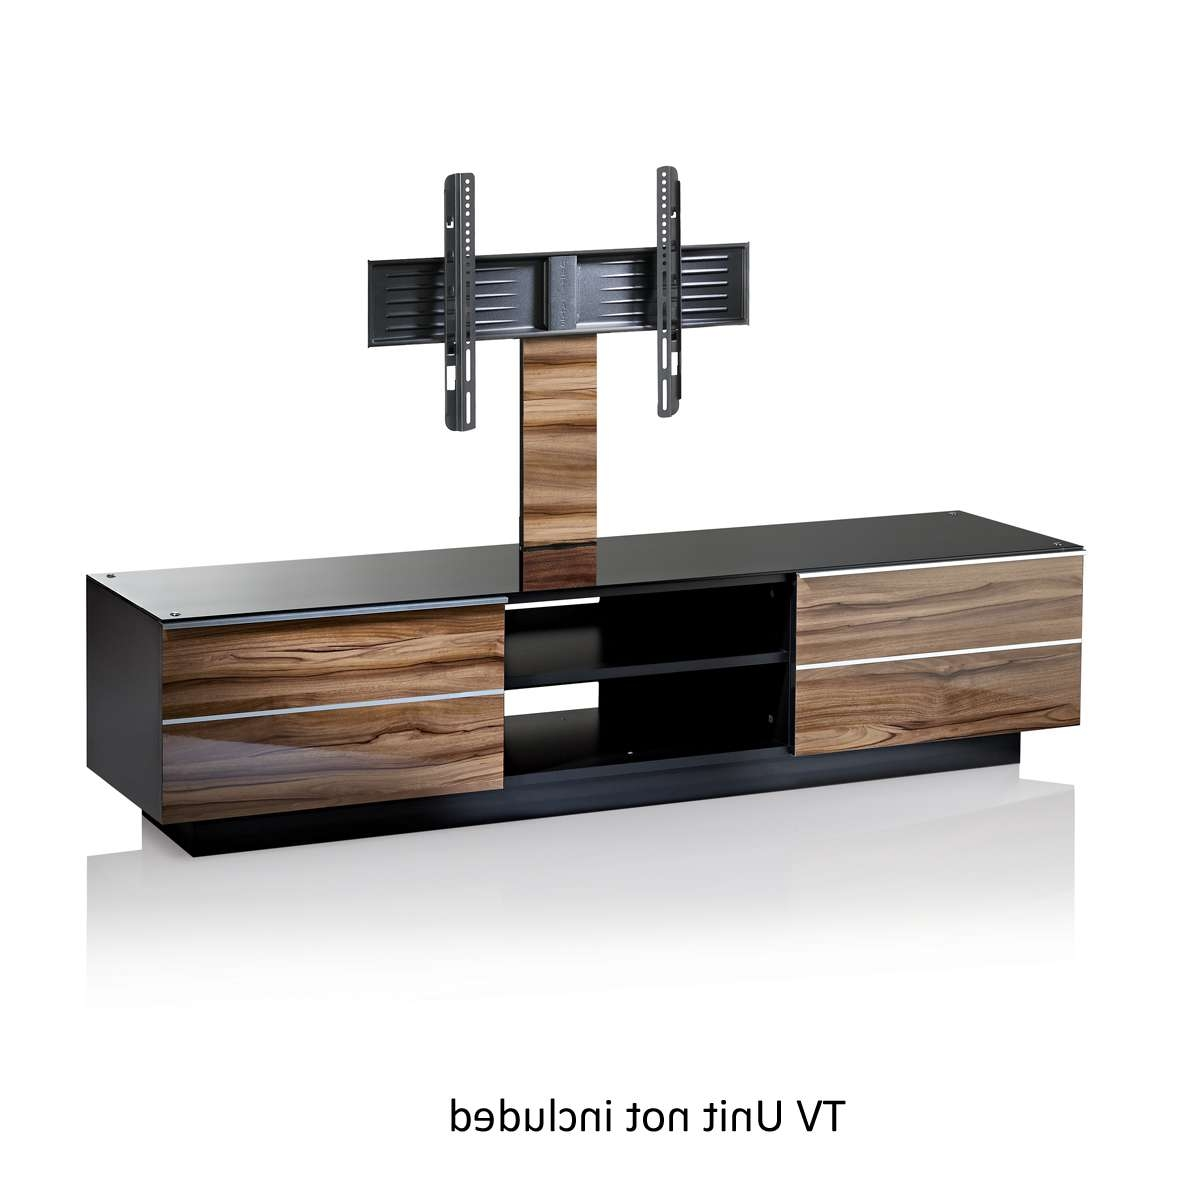 Milano G B 80 Mln Cantilever Tv Bracket,ukcf Ultimate,,uk Cf Within Cantilever Tv Stands (View 13 of 15)